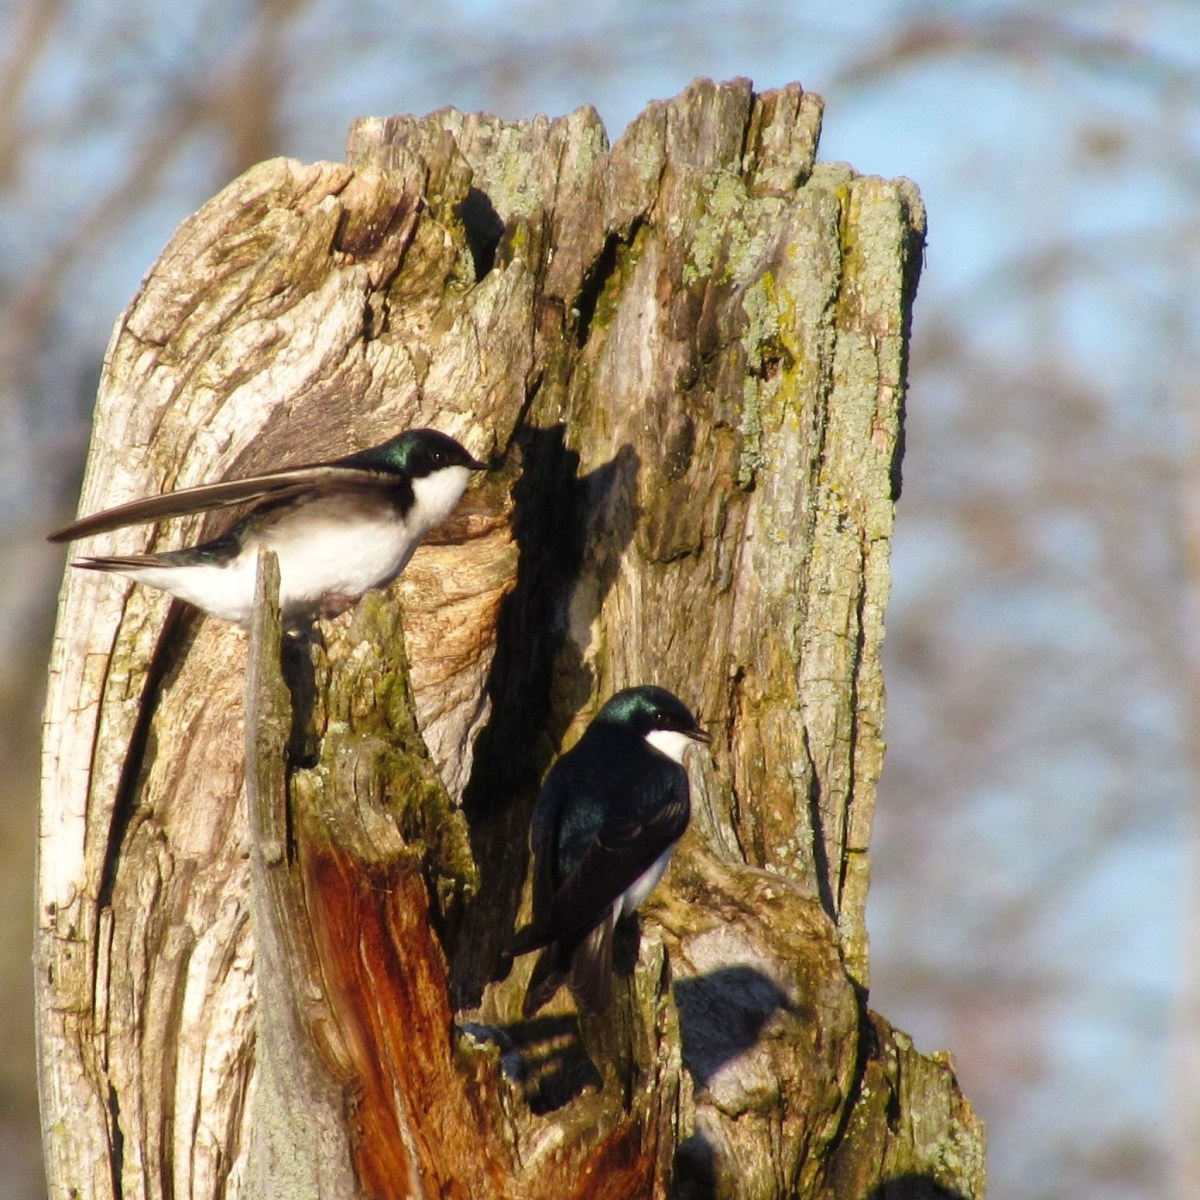 Two Tree Swallows perched on a decaying tree stump